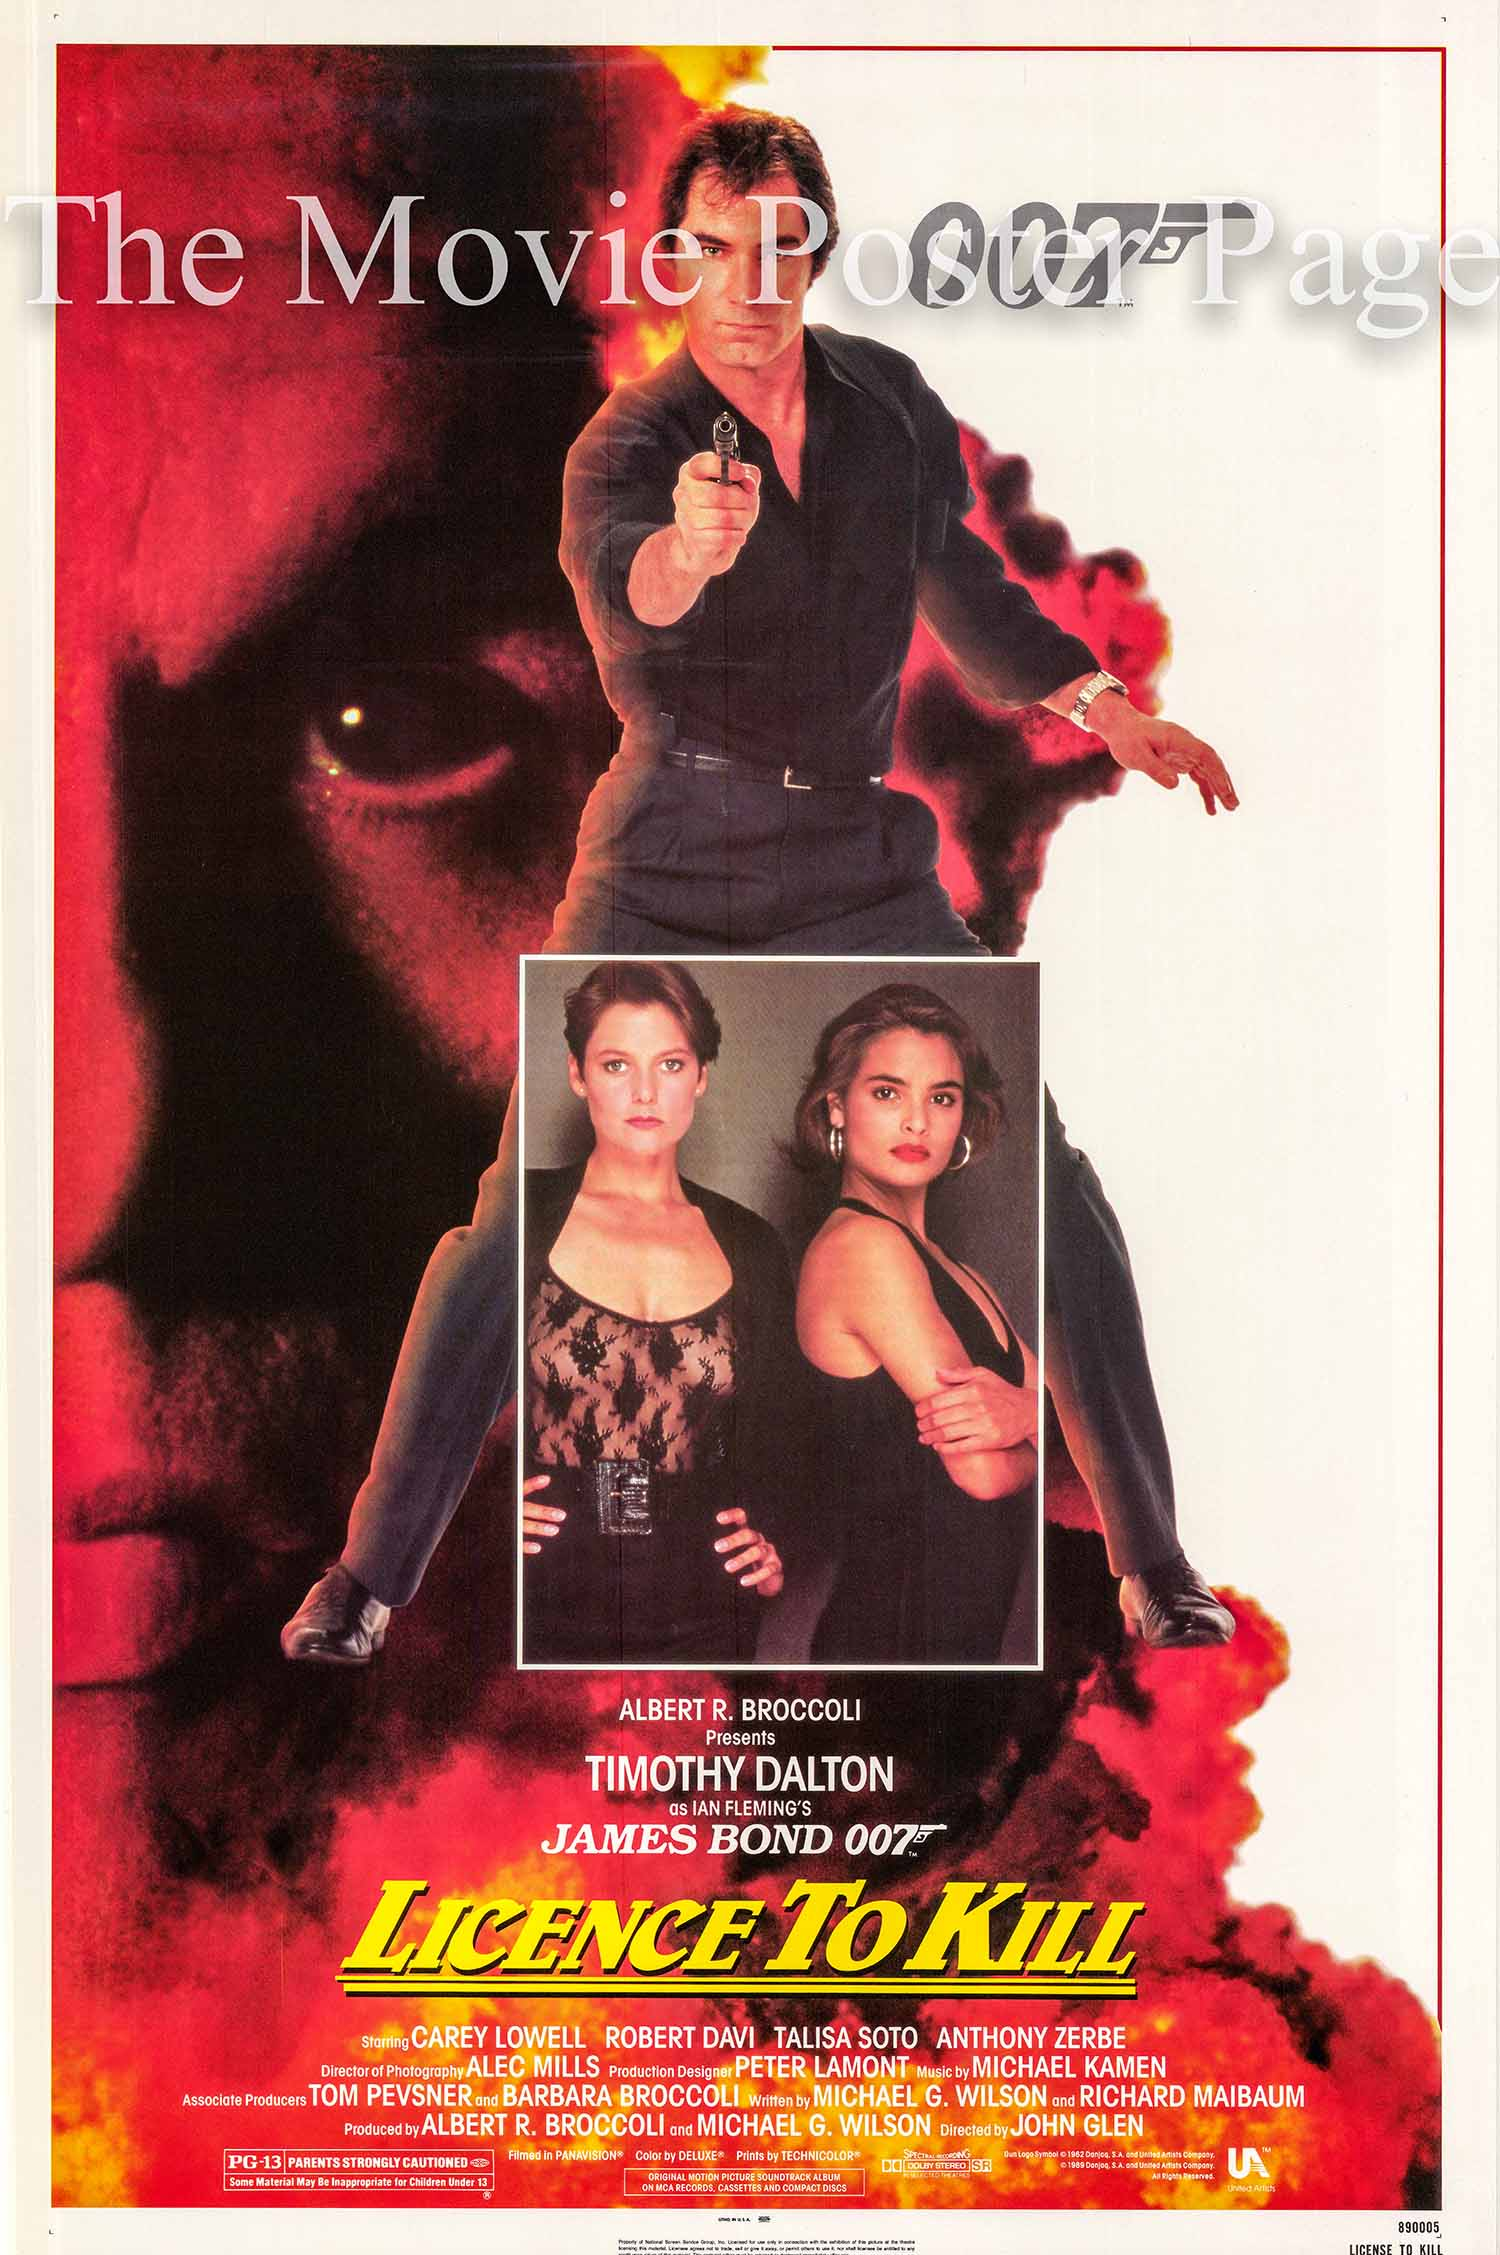 Pictured is the US one-sheet promotional poster for the 1989 John Glen James Bond film License to Kill, starring Timothy Dalton.